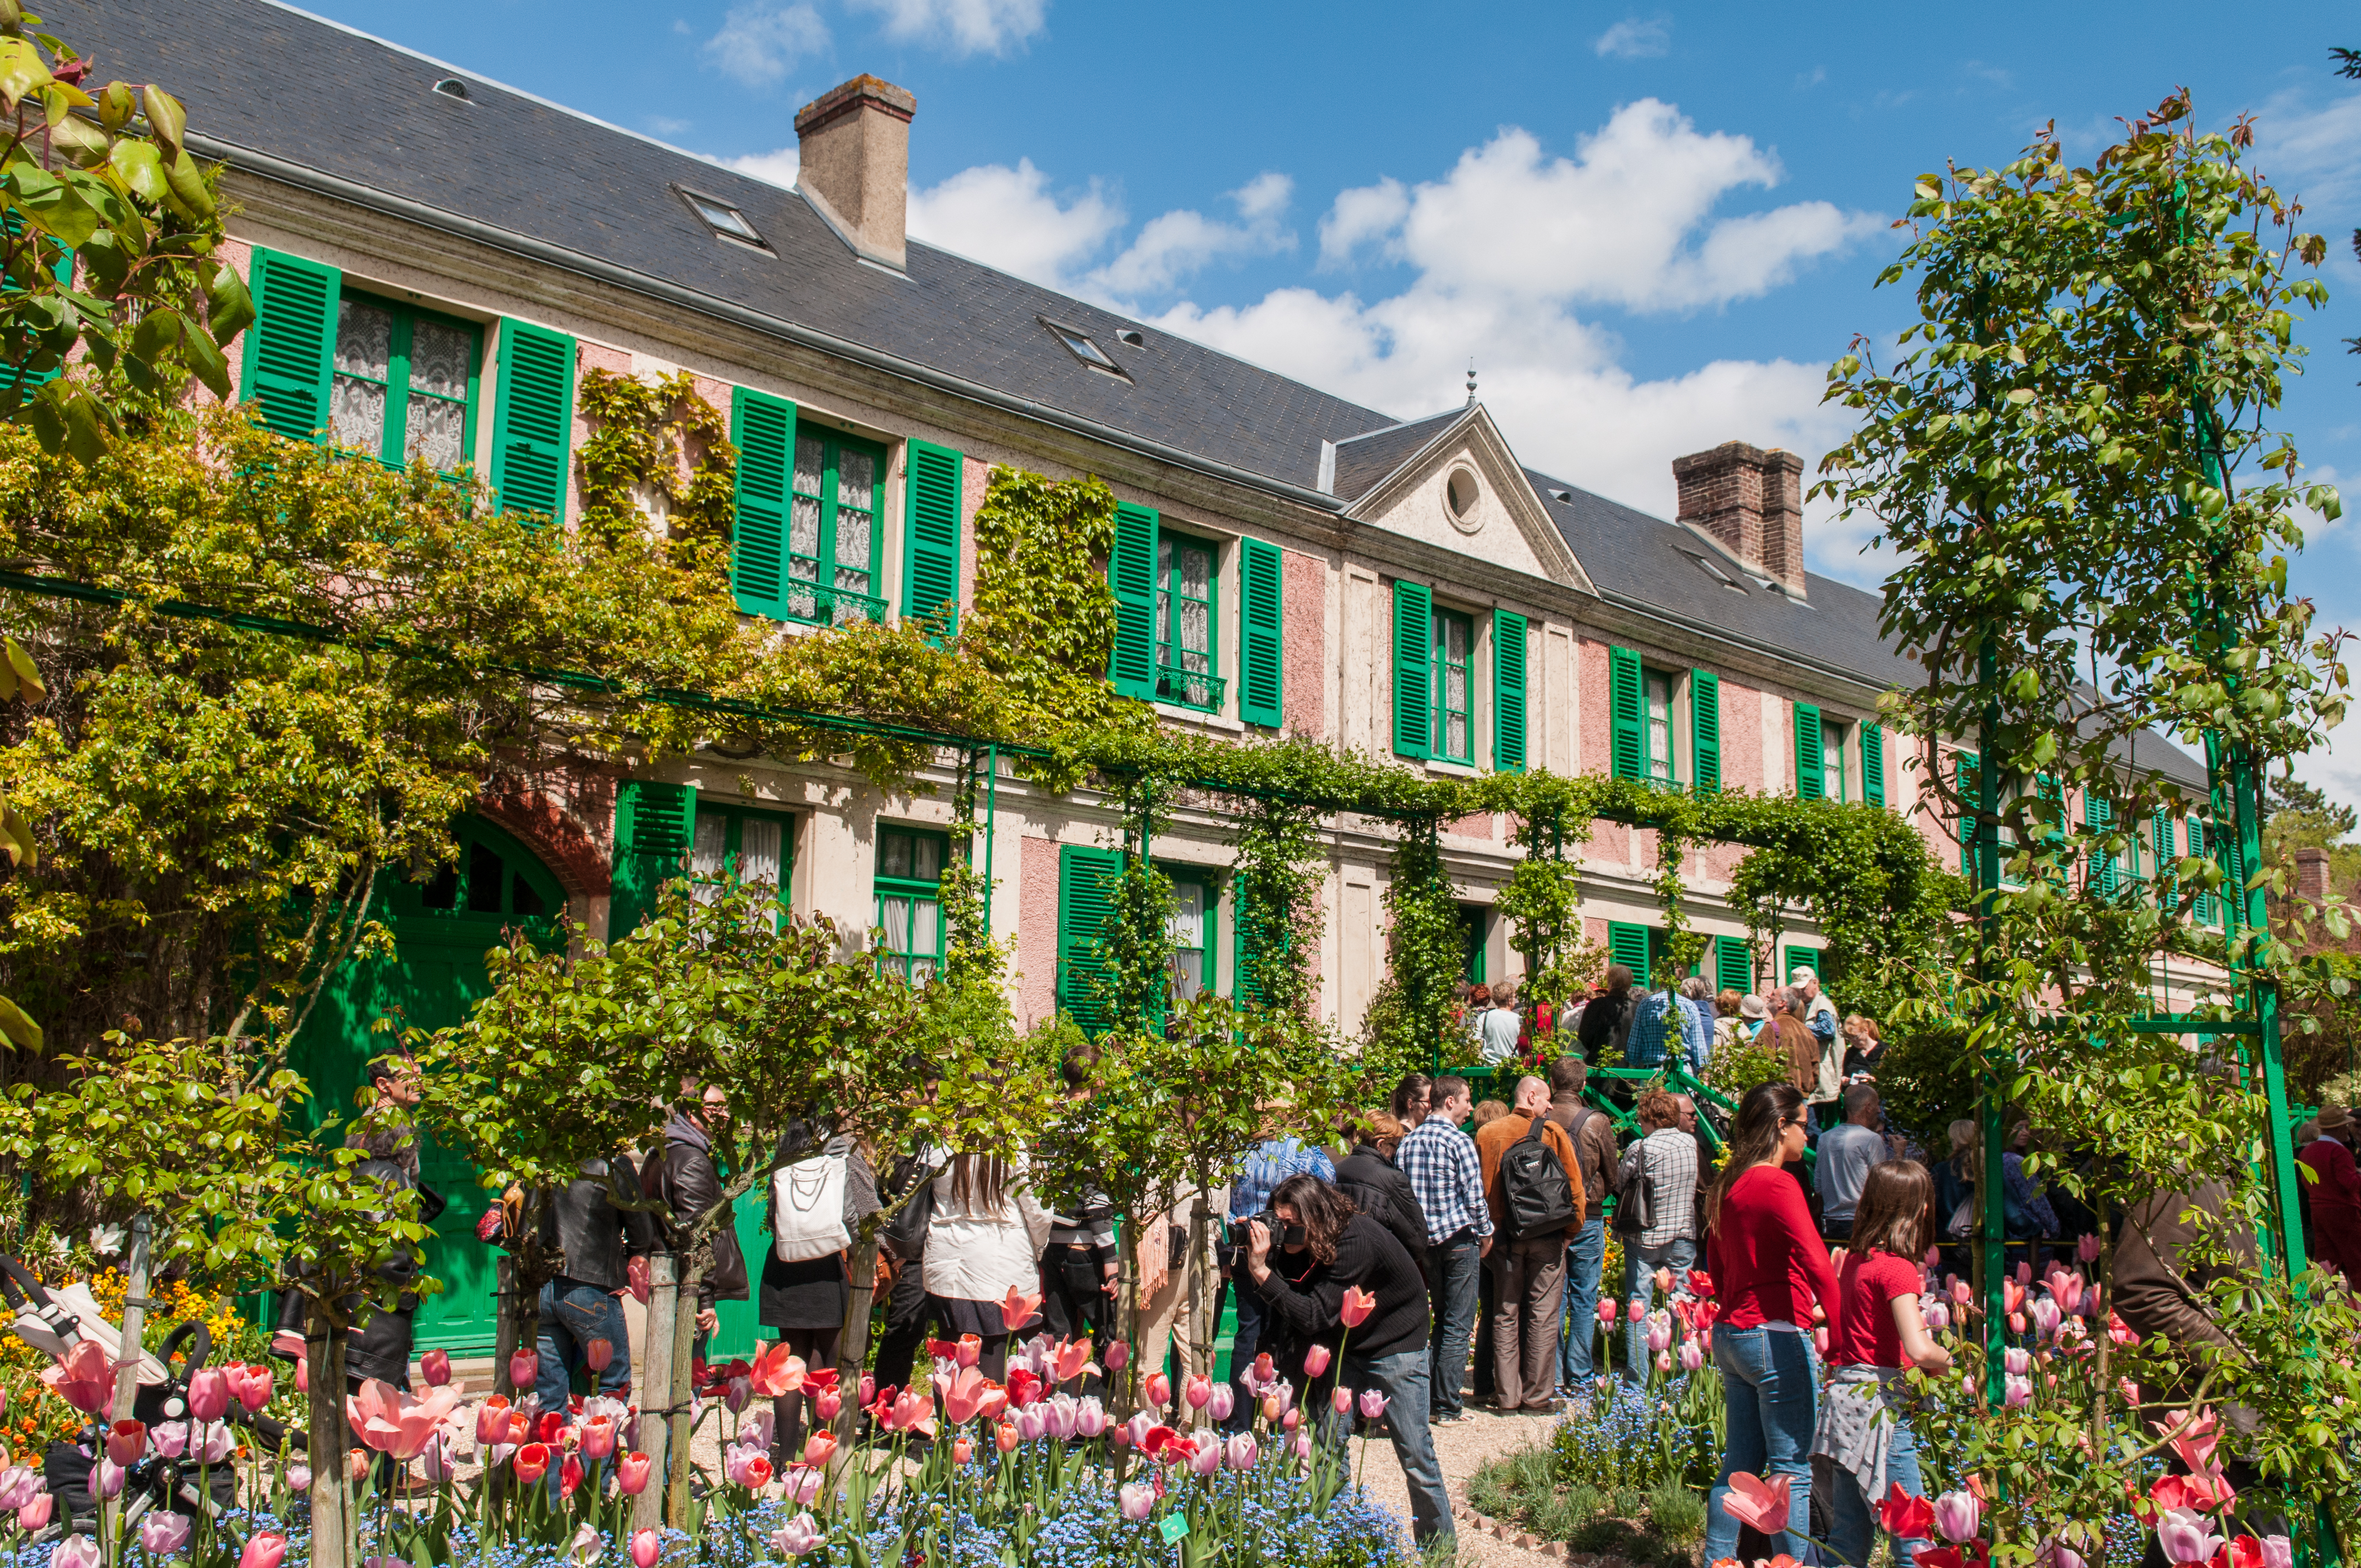 File:Claude Monet house and garden in Giverny (8741490771).jpg ...